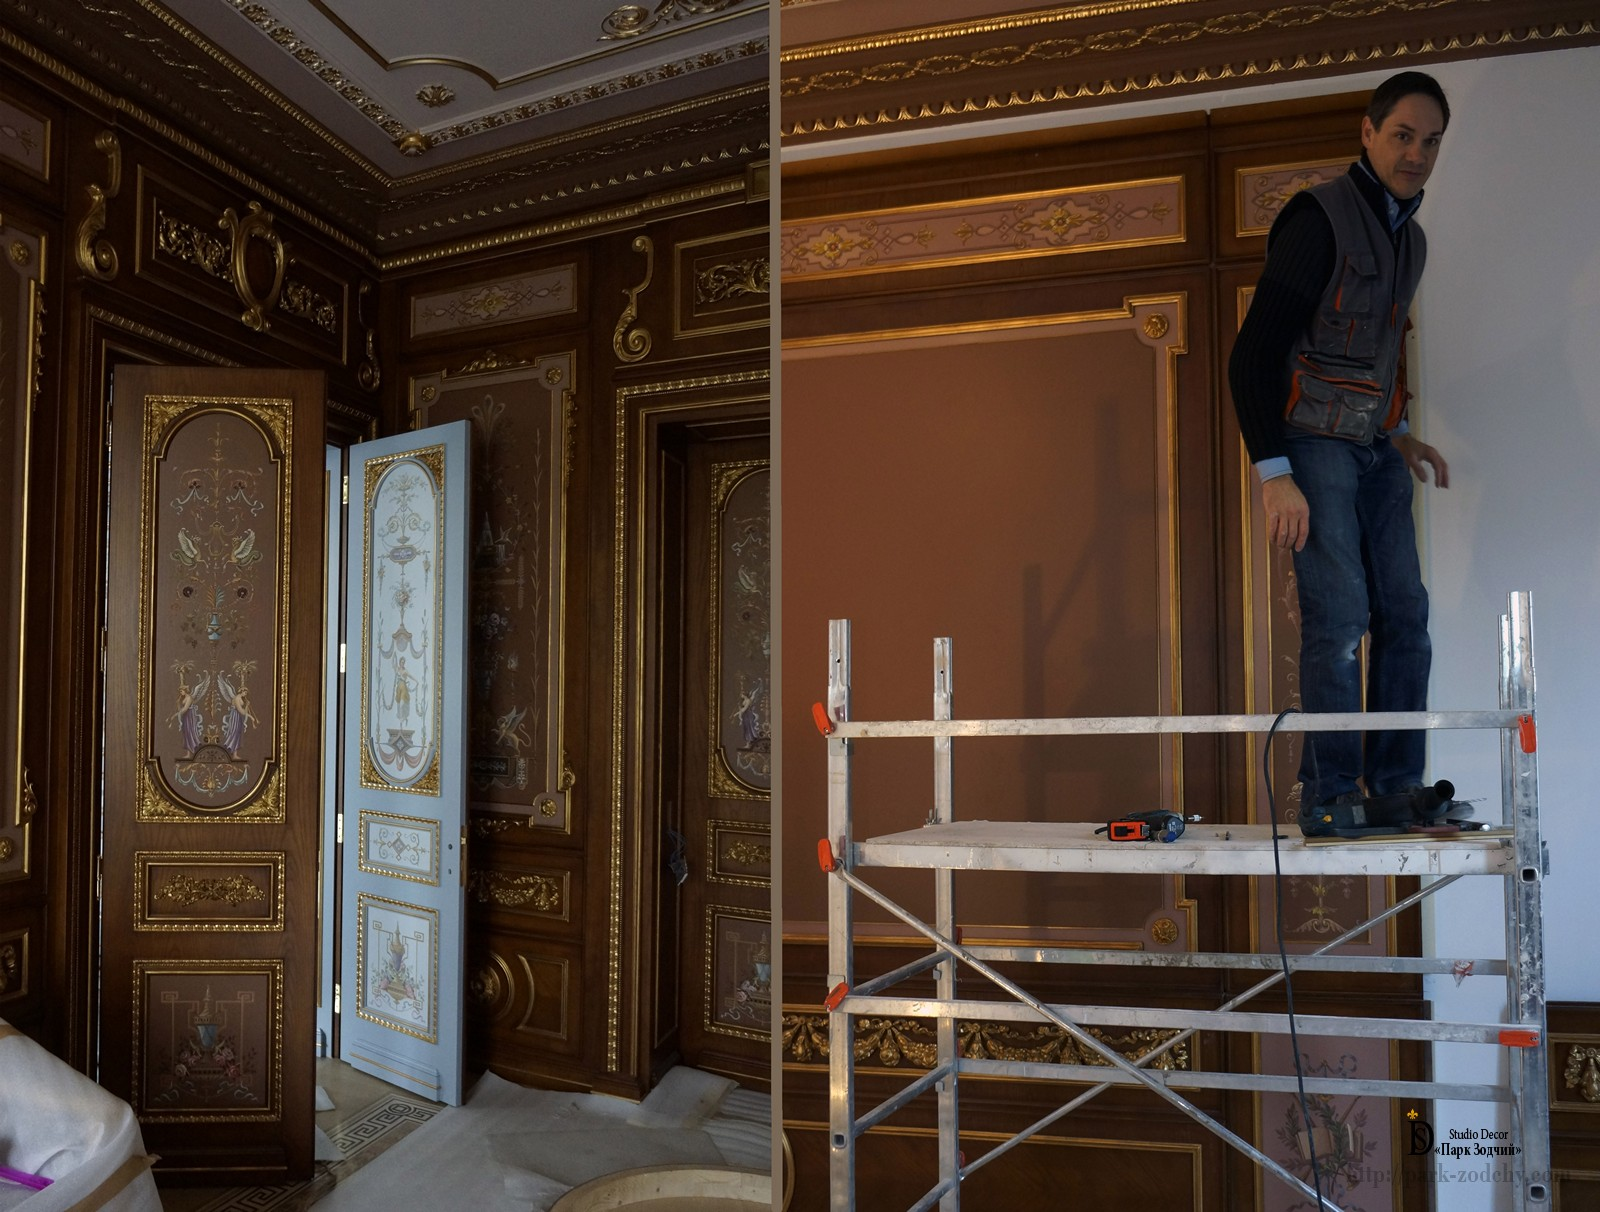 Installation of decorative panels in the interior